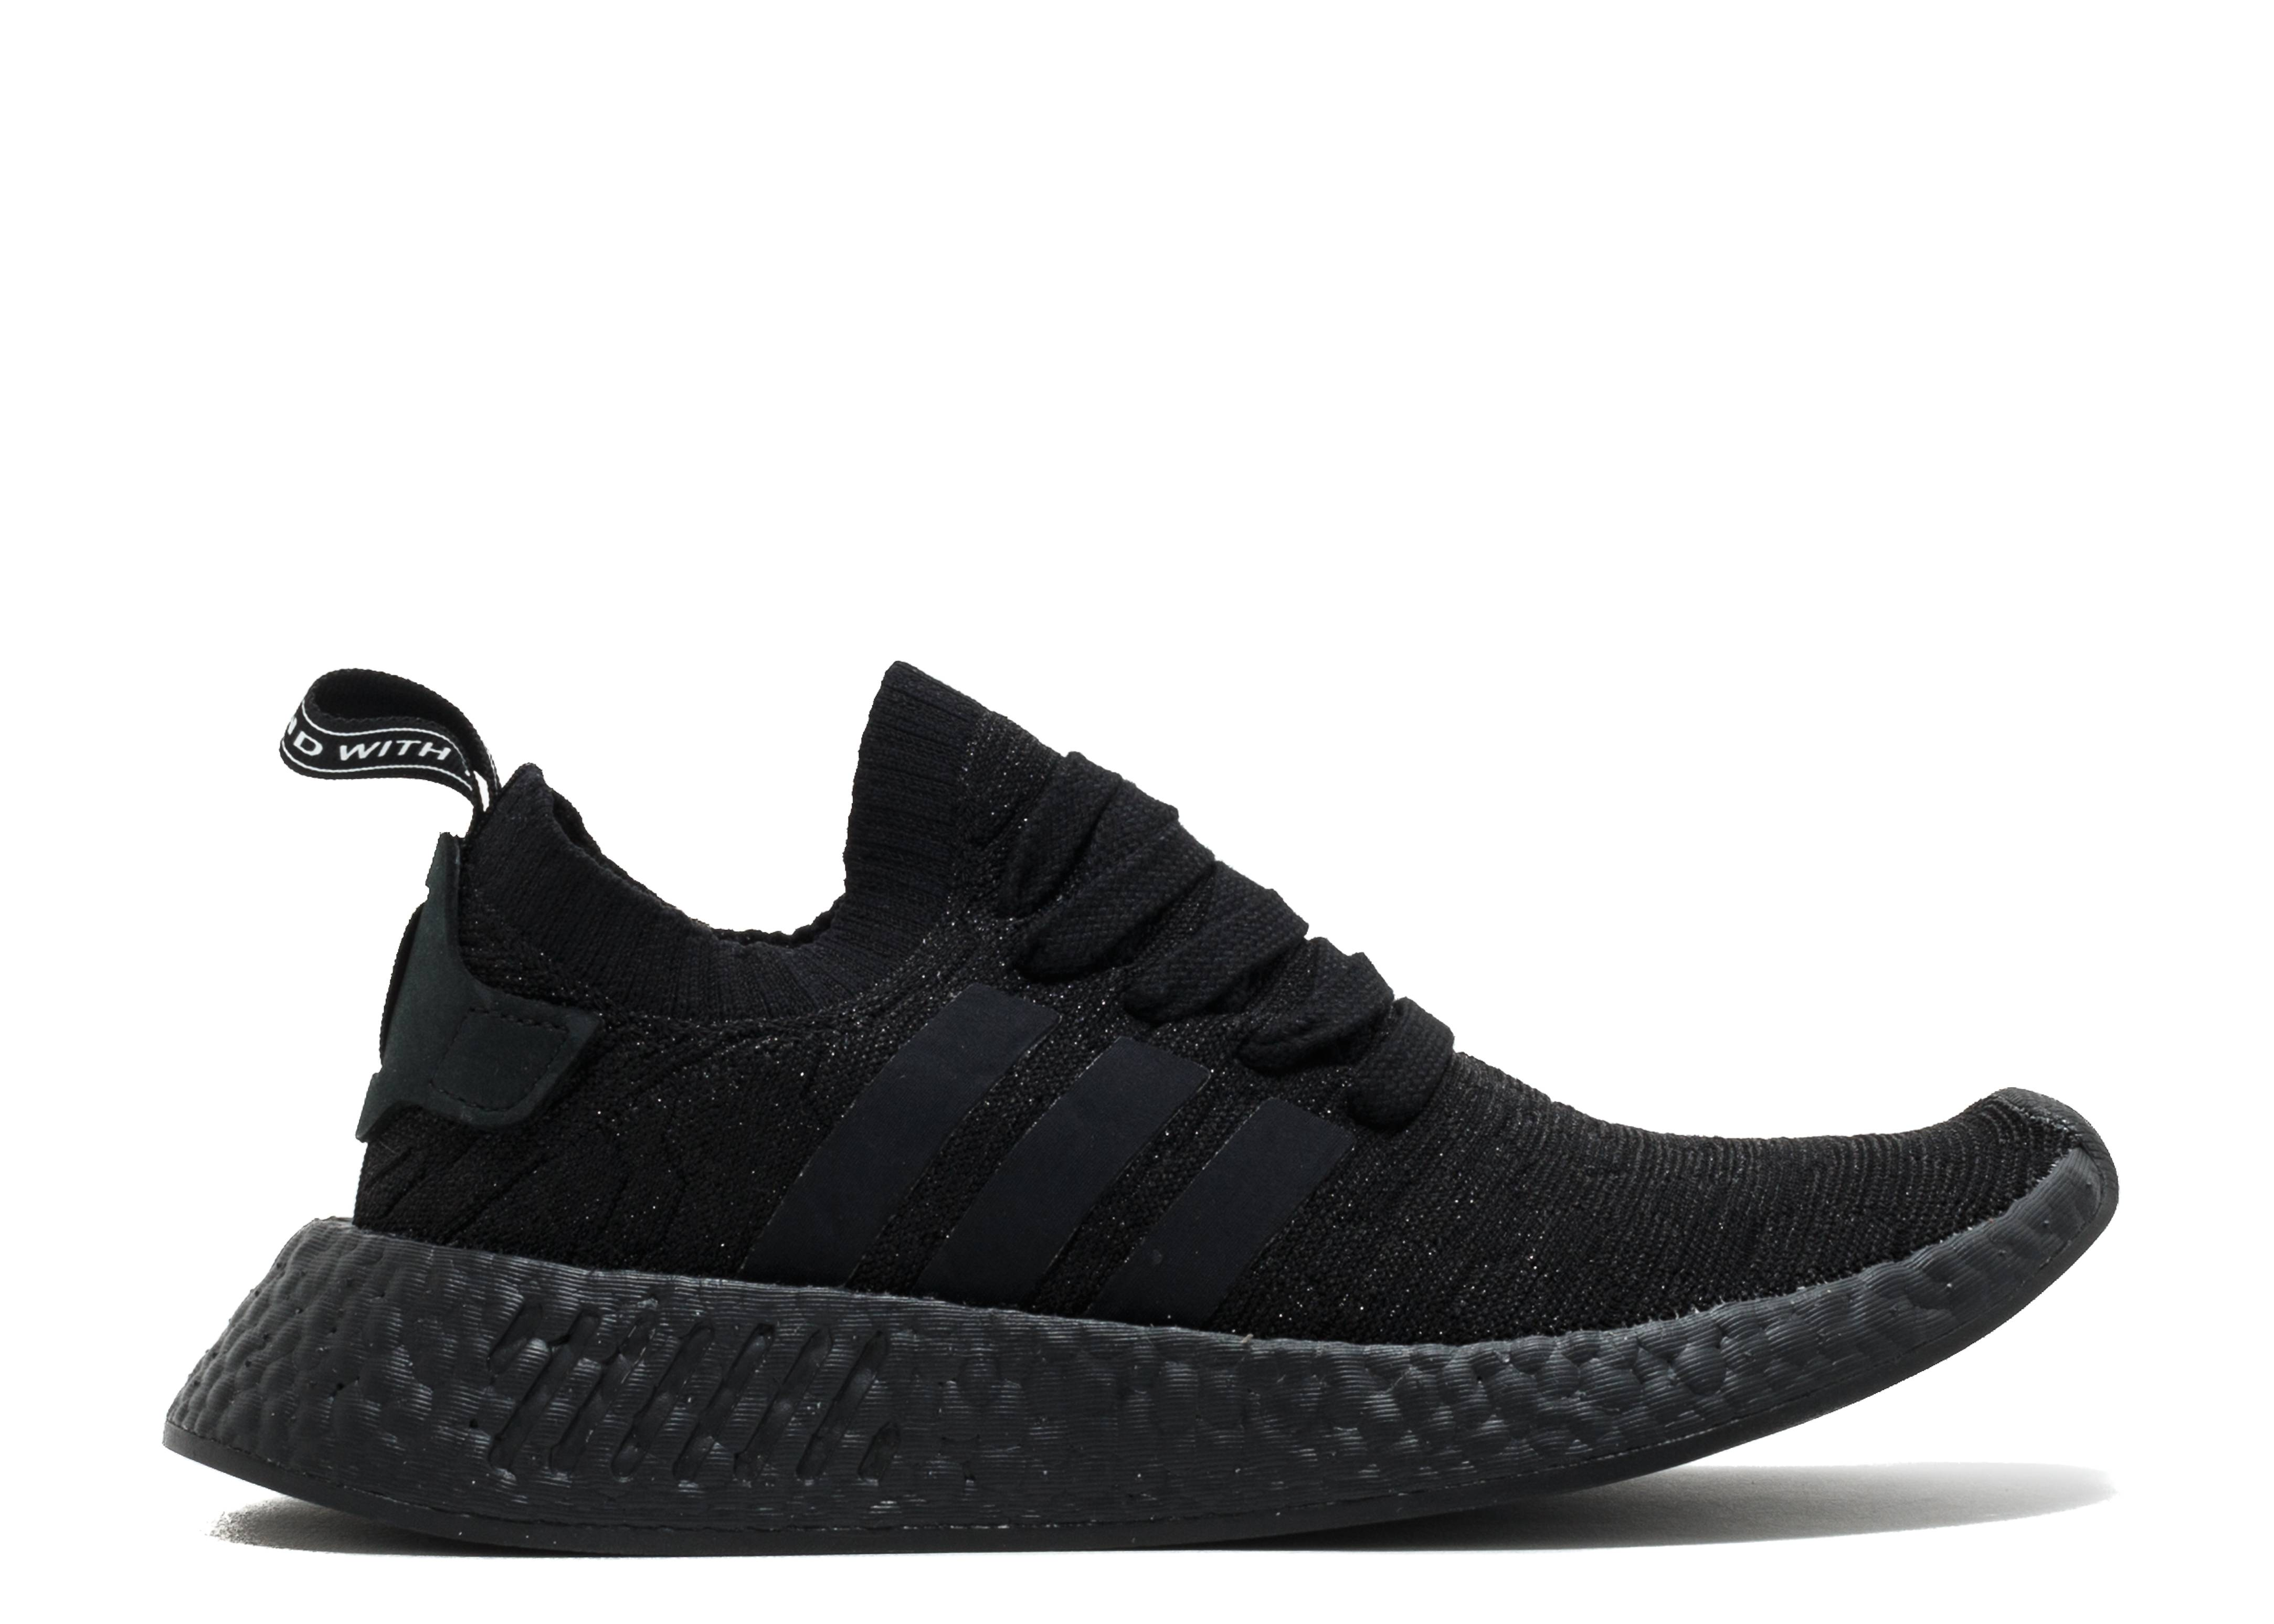 adidas nmd r2 men's black